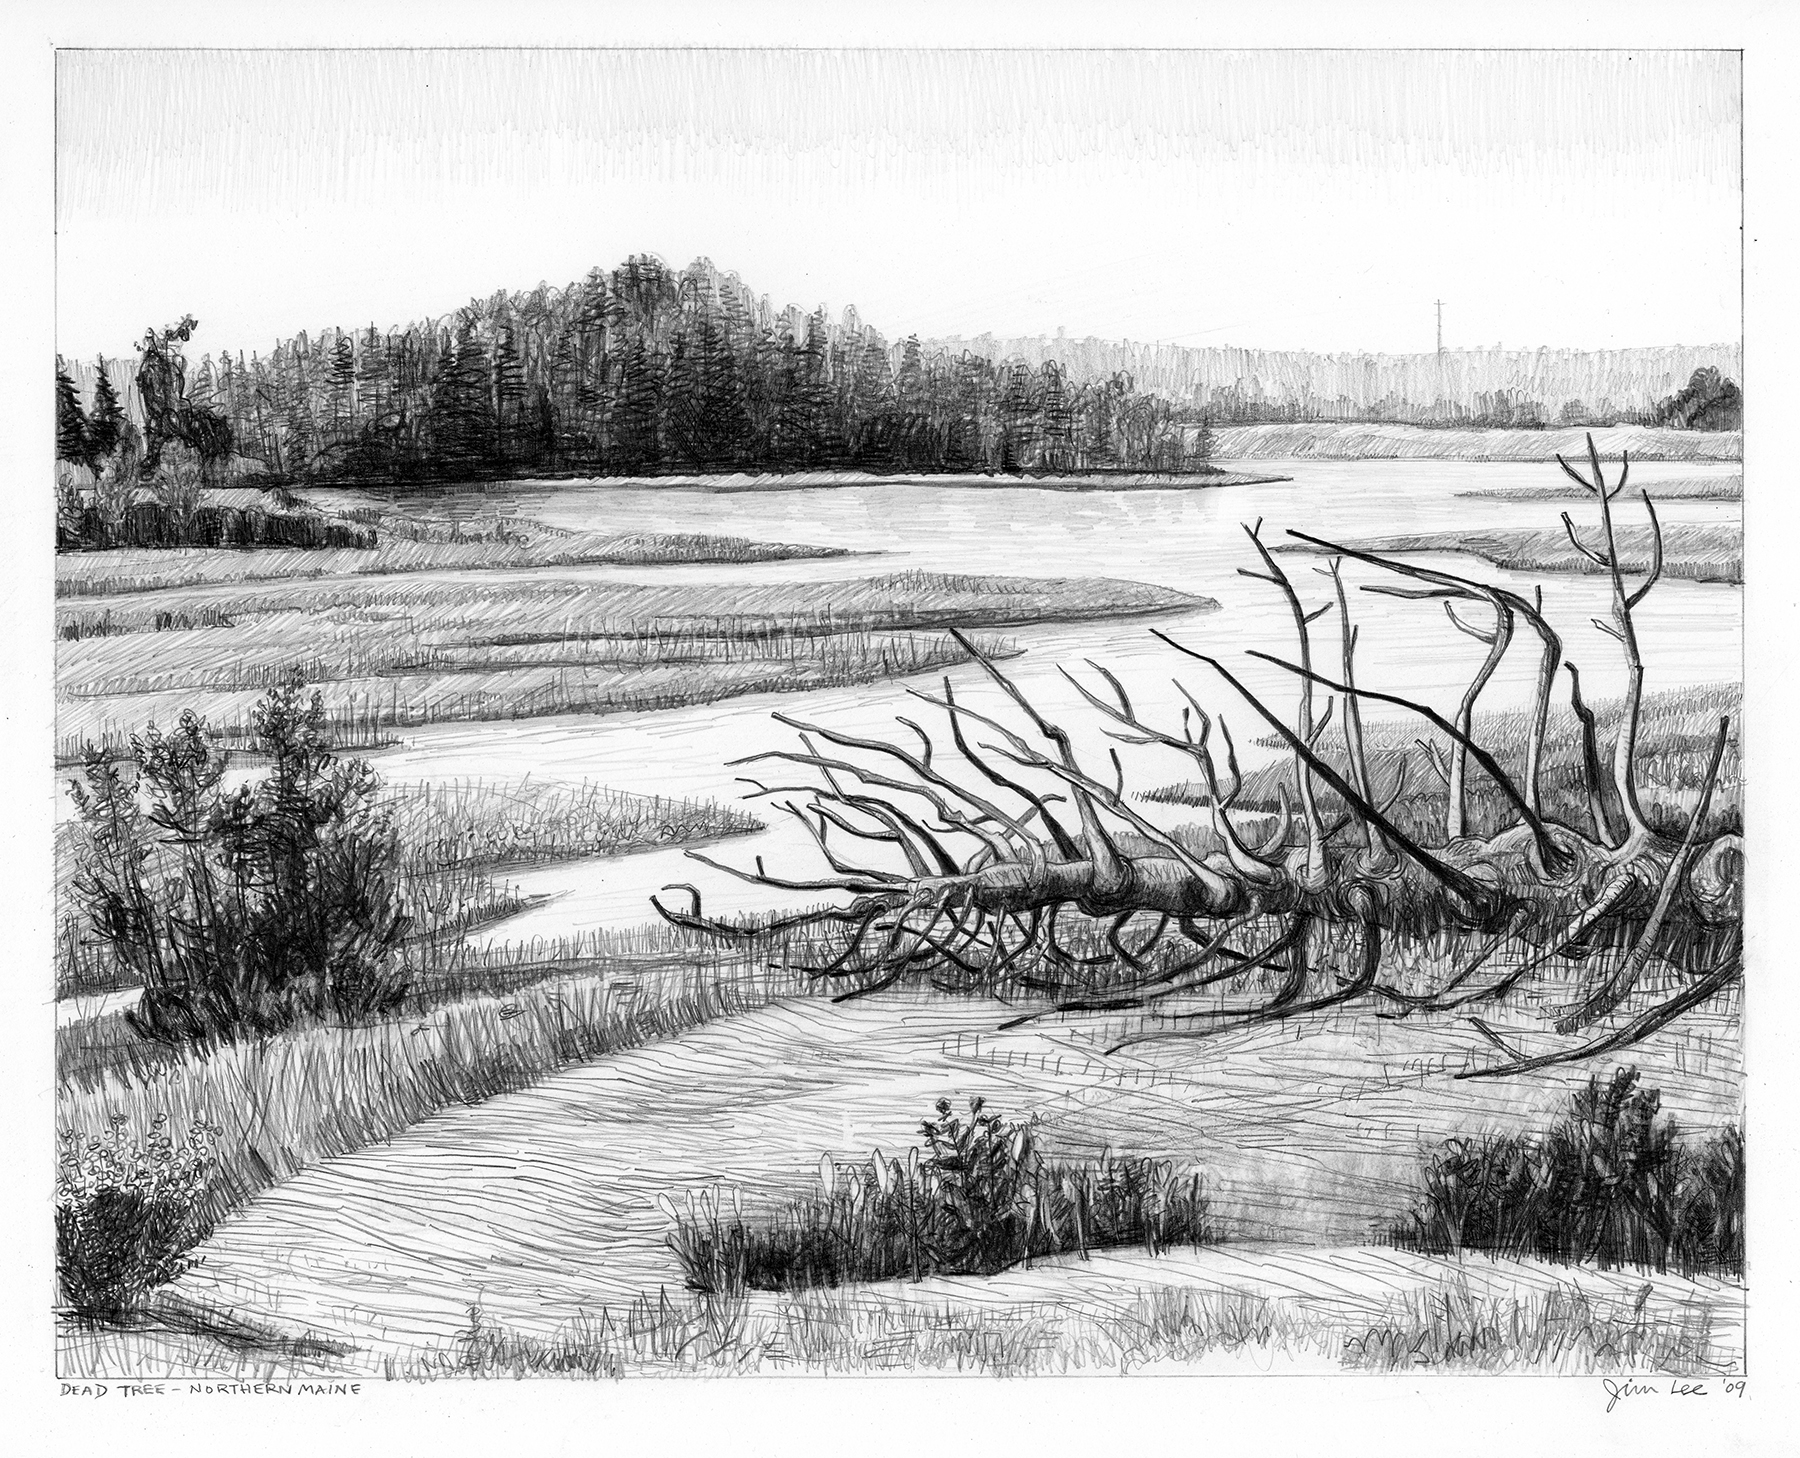 "Dead Tree-Northern Maine   Pencil, 15x22"", 2008"